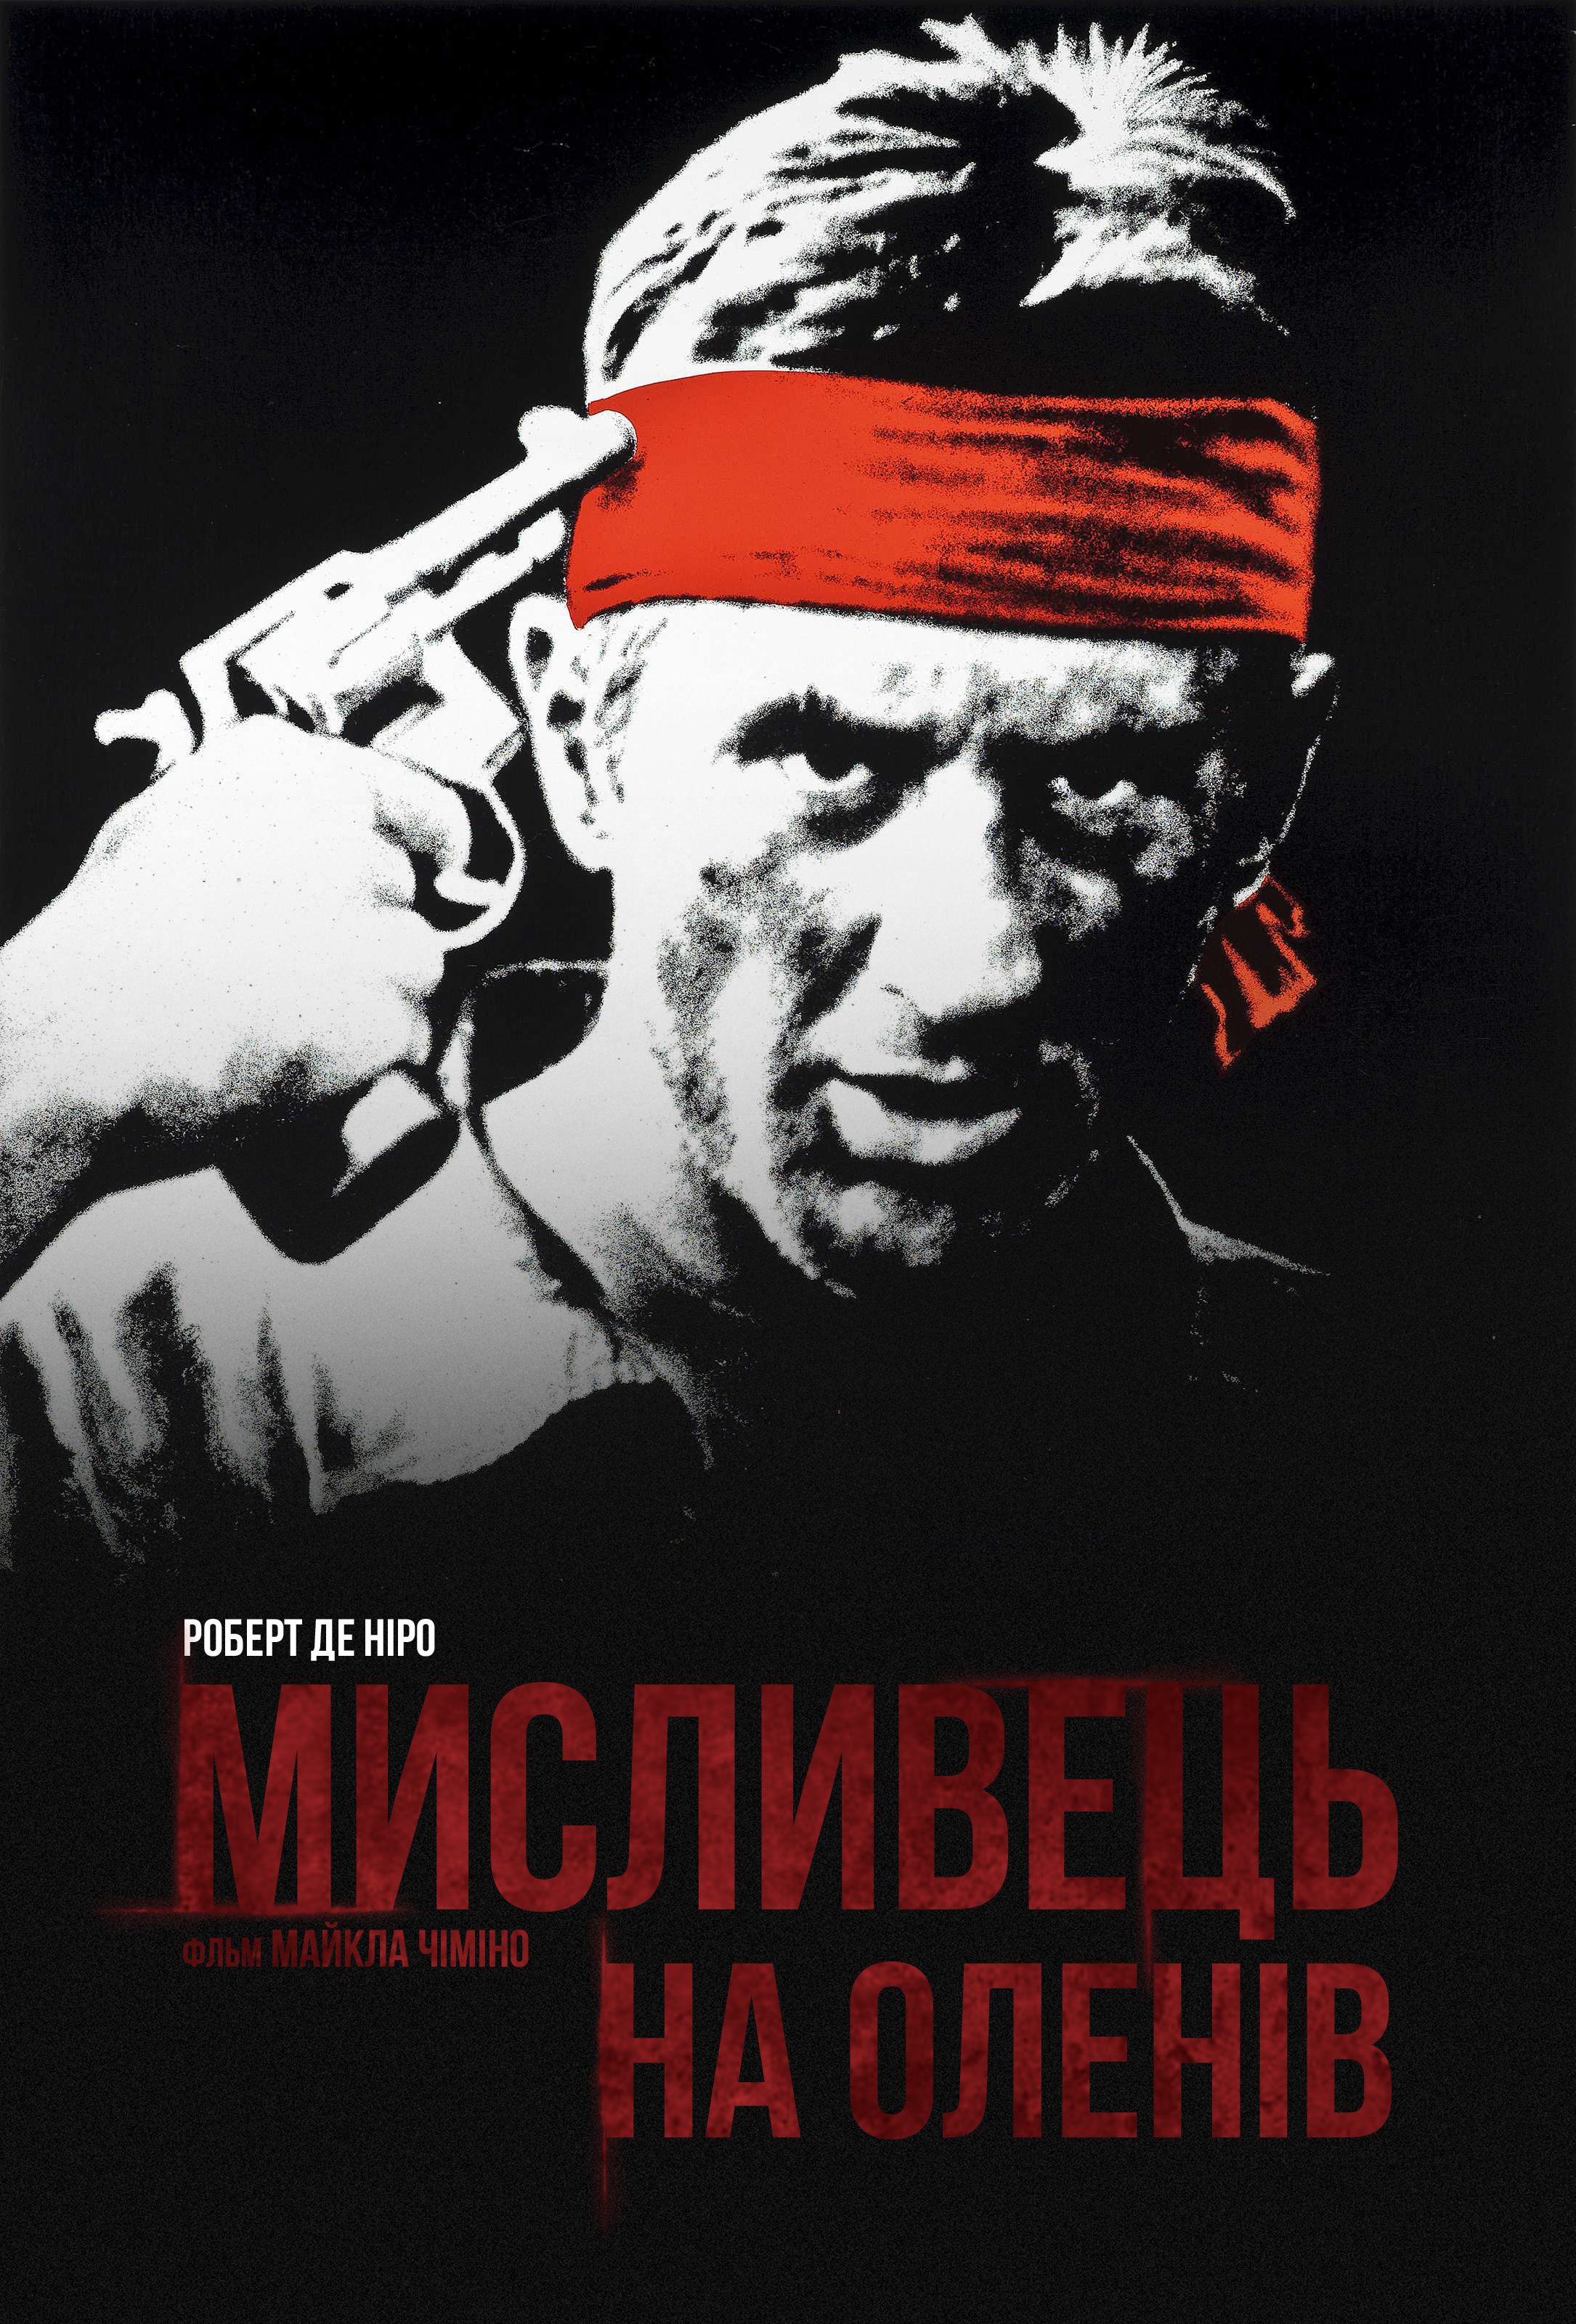 Мисливець на оленів / The Deer hunter (1978) AVC 2xUkr/Eng | Sub Eng